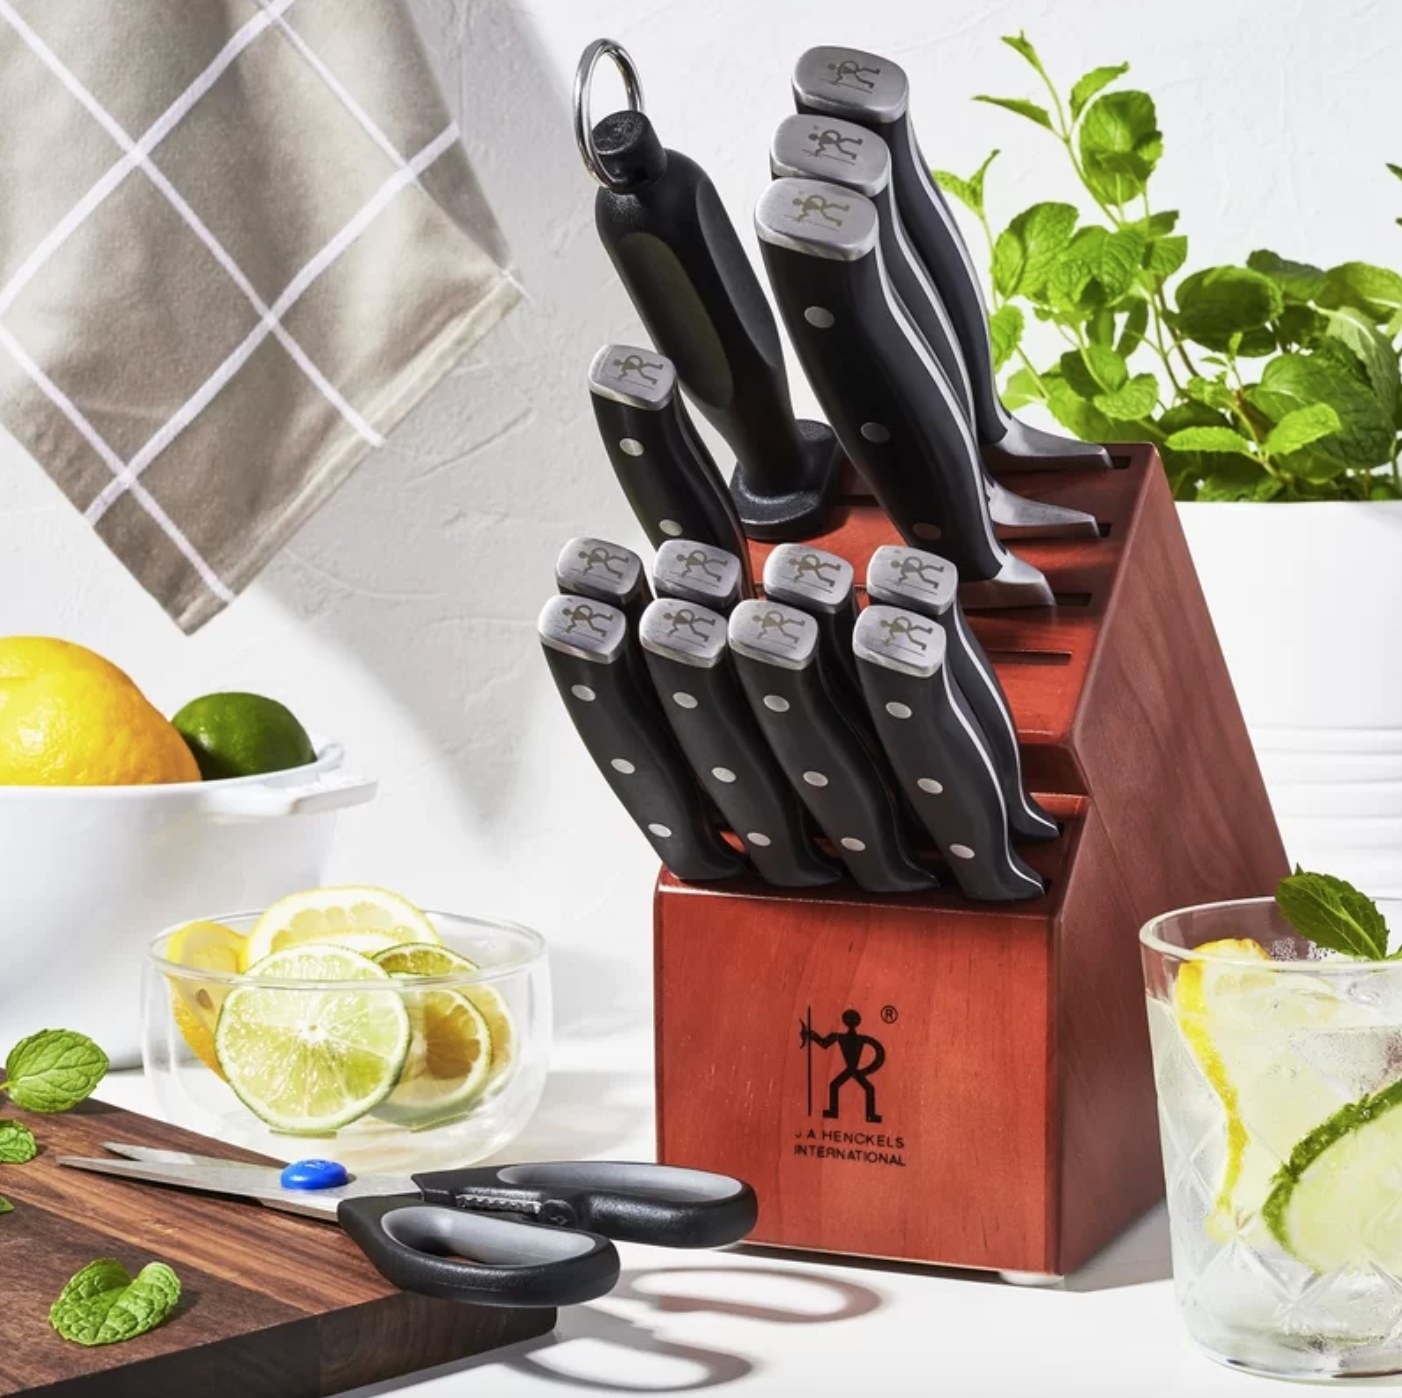 The 15 piece knife set in a wood block